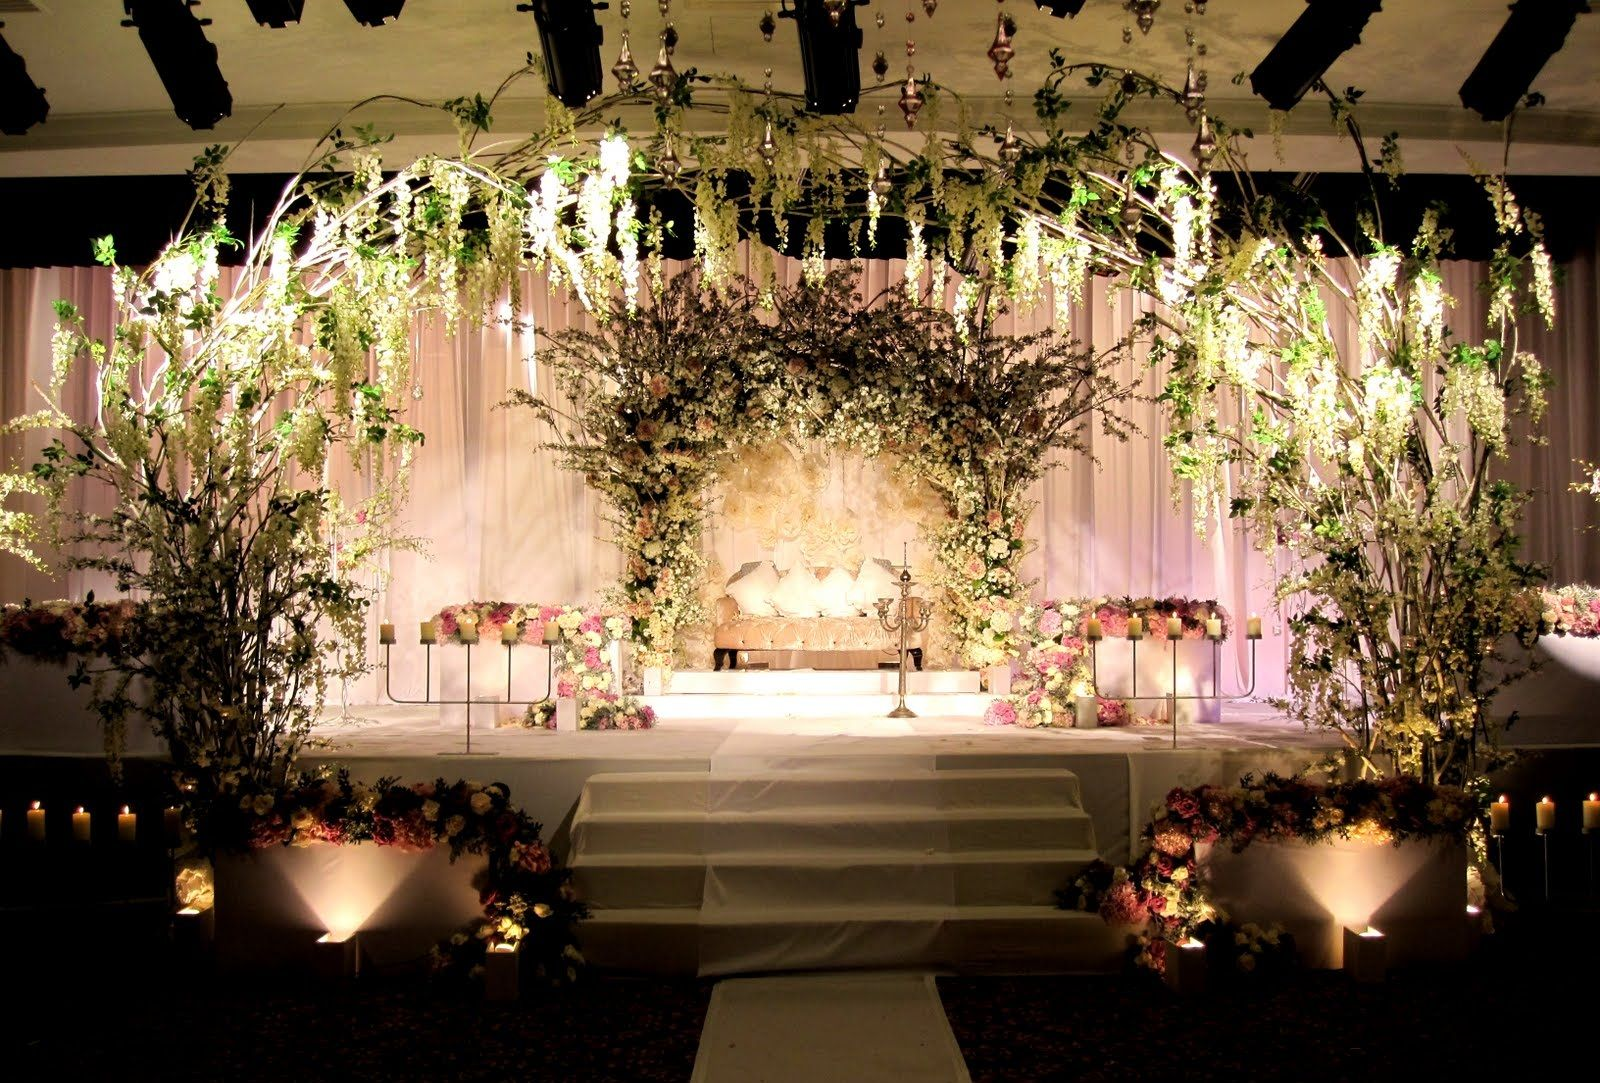 Romatantic reception decorations 18 beautiful floral for Floral wedding decorations ideas